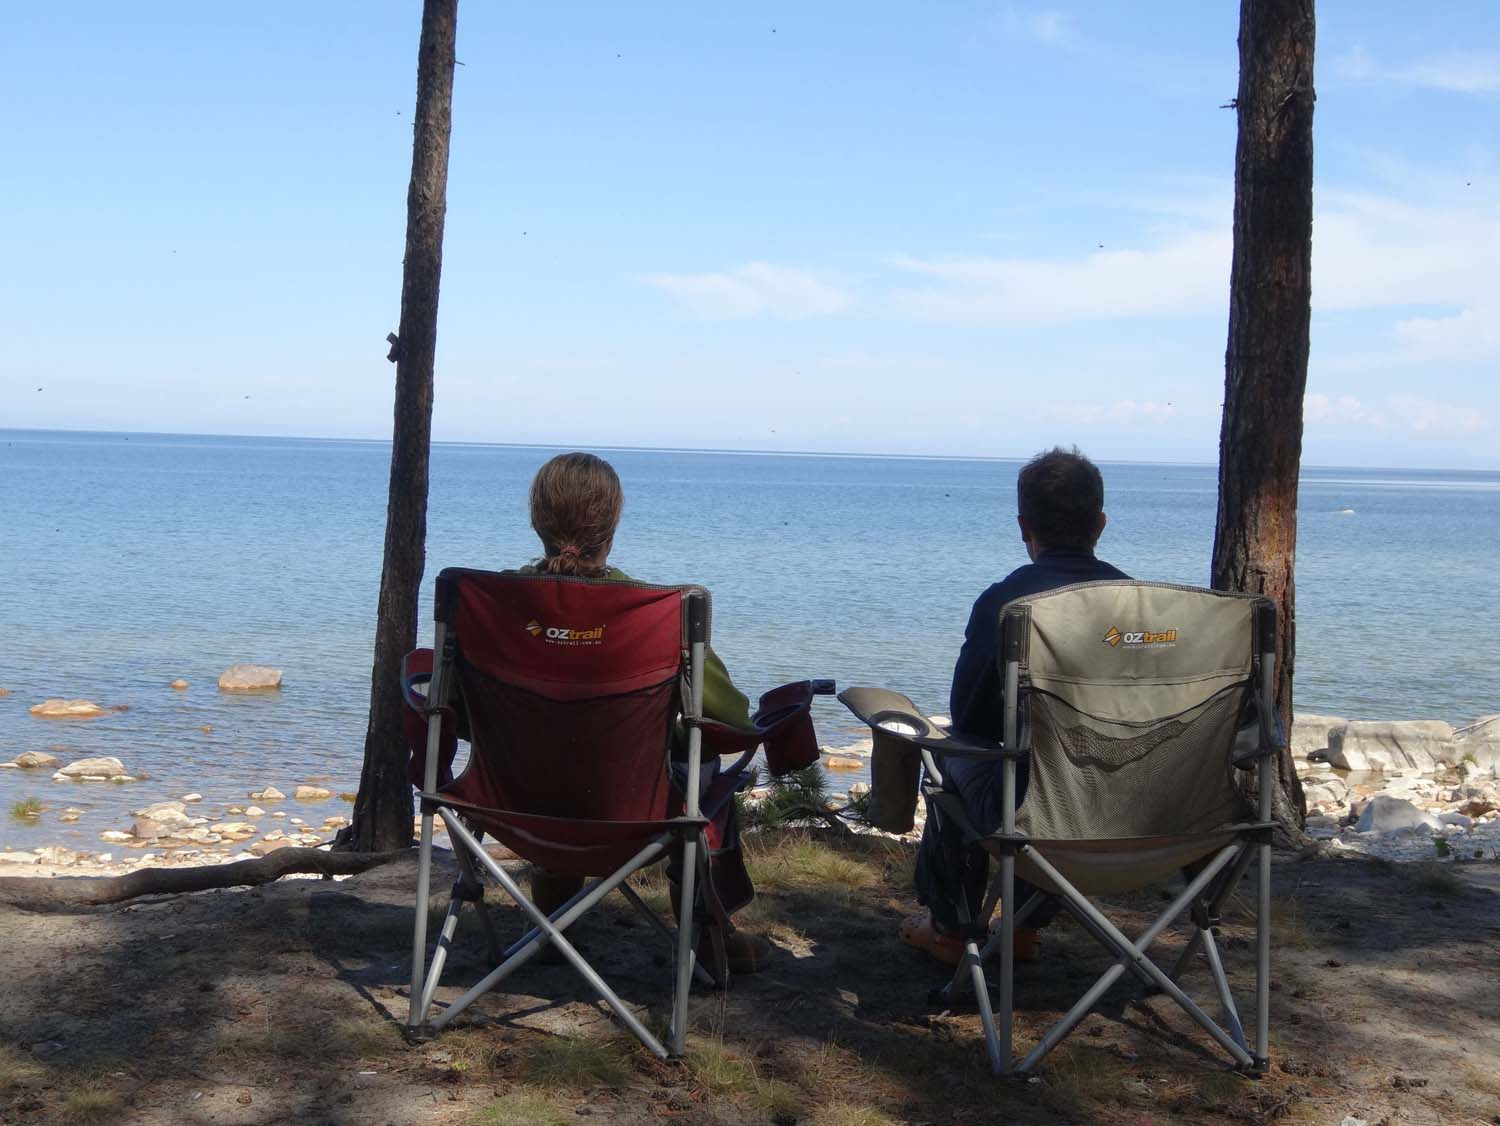 we even took some time to relax at Lake Baikal